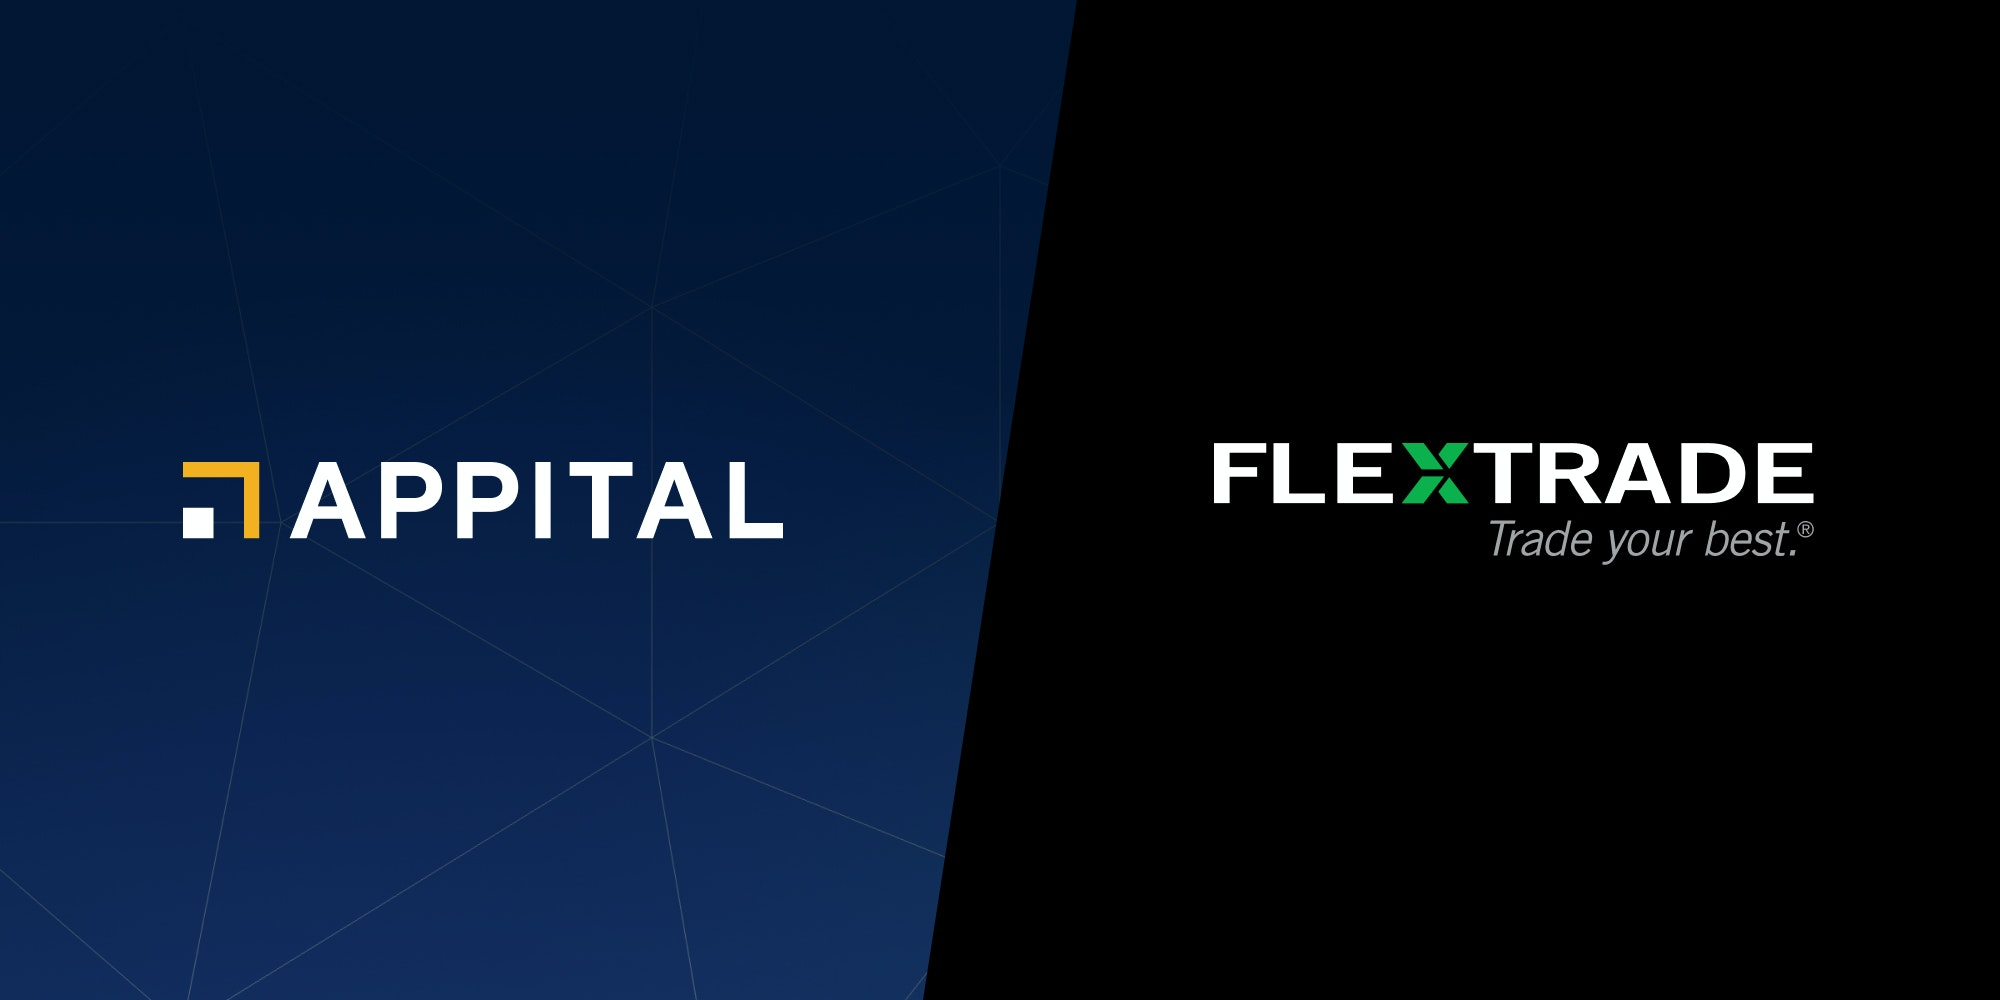 FlexTrade First EMS to Integrate with Appital's Pioneering Bookbuilding Platform